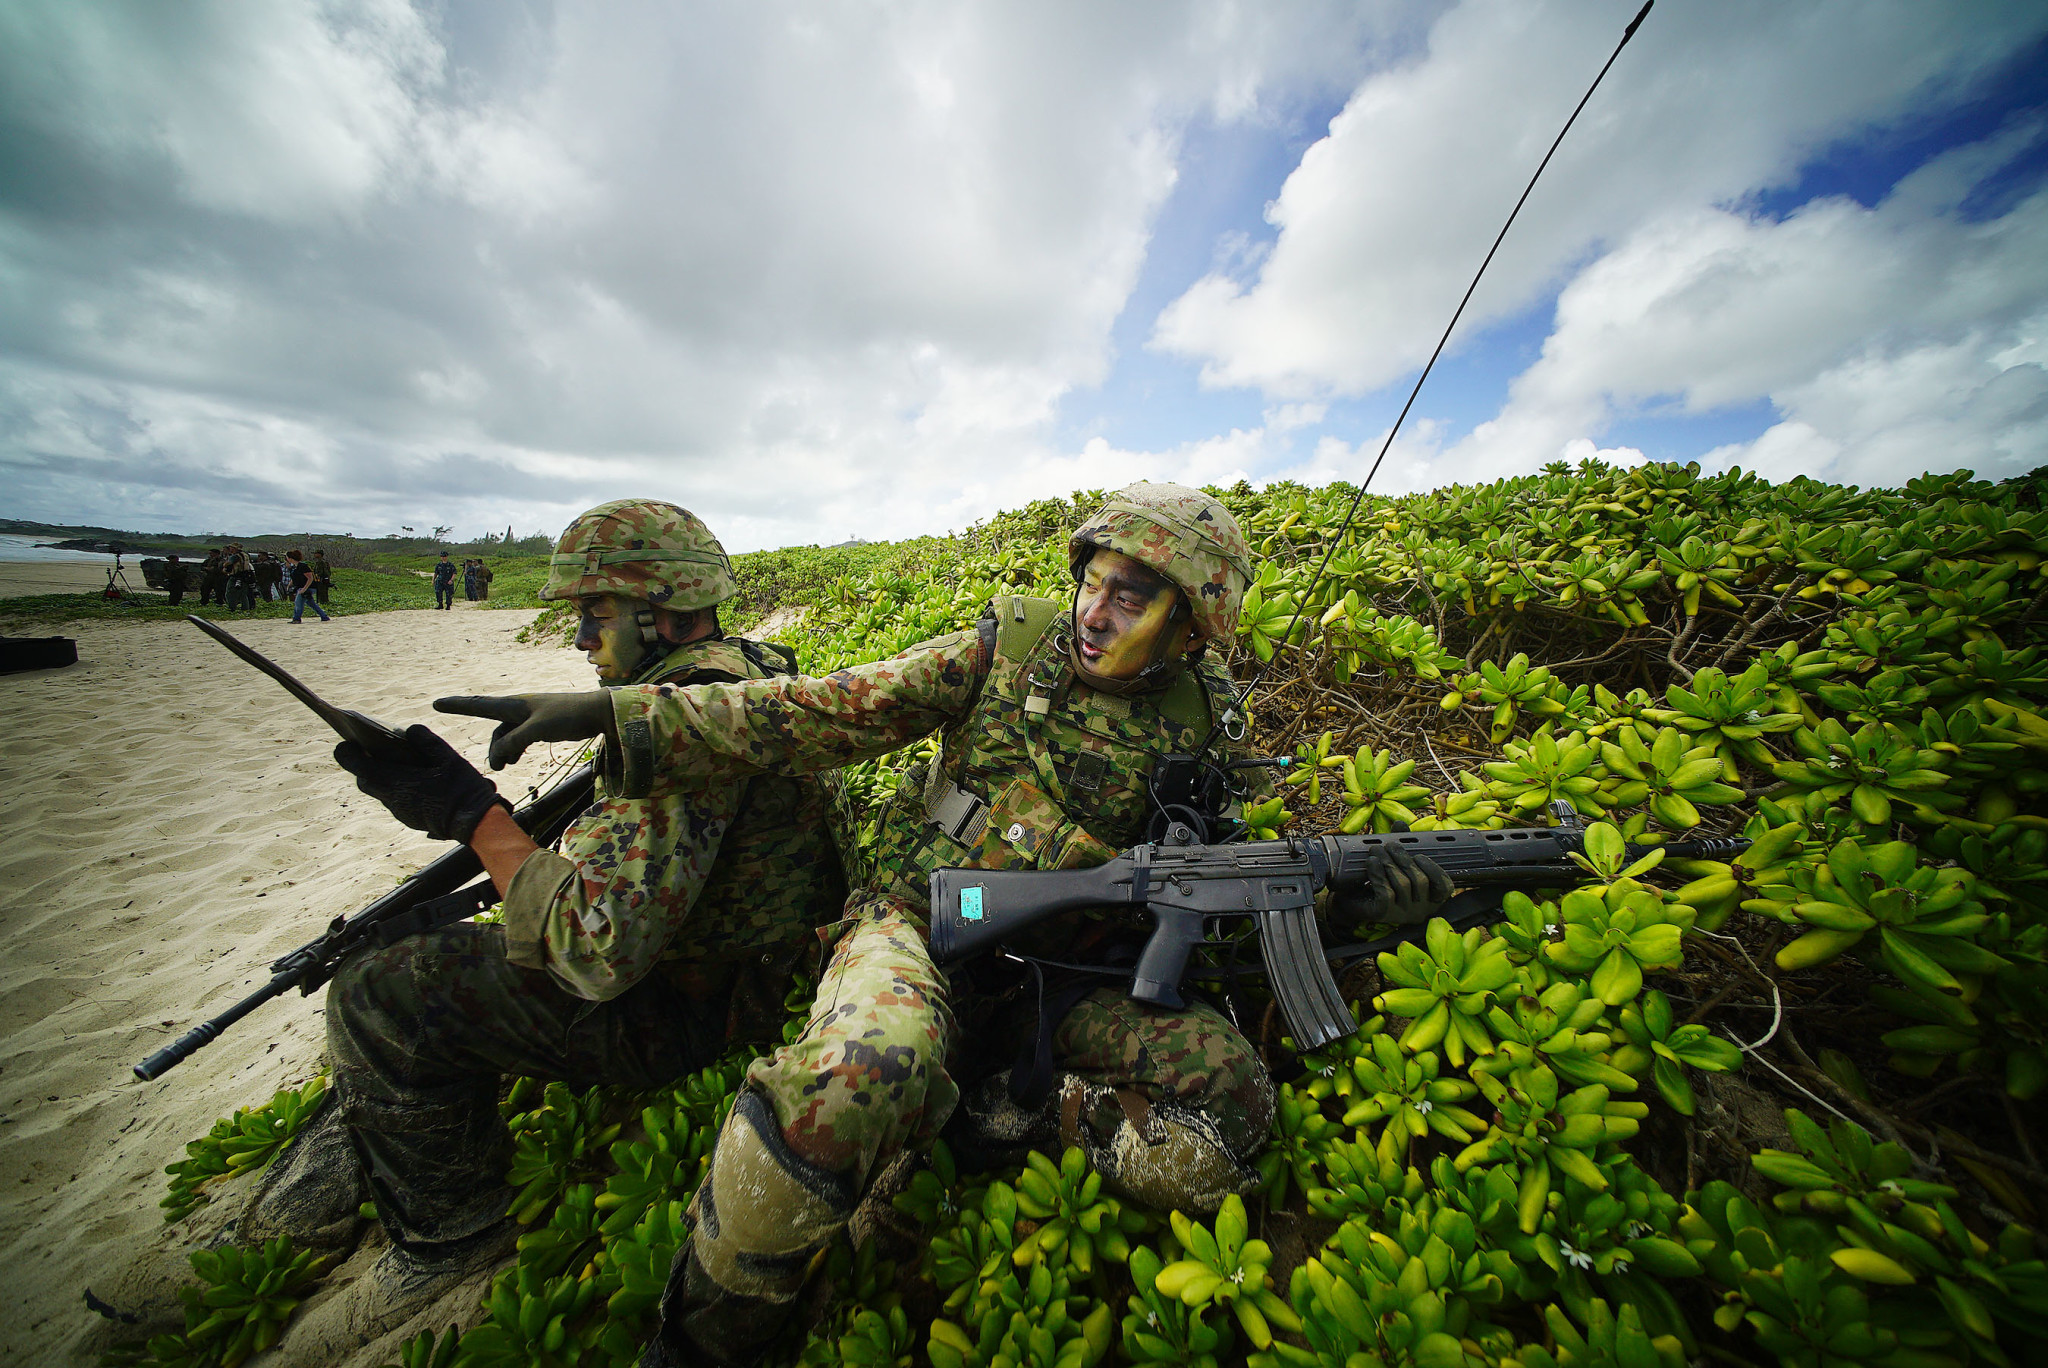 <p>It was an international operation, with members of the Japan Ground Self-Defense Force taking part. A few miles to the south, soldiers from Australia, New Zealand and Tonga joined Americans in an assault exercise at Bellows Beach.</p>